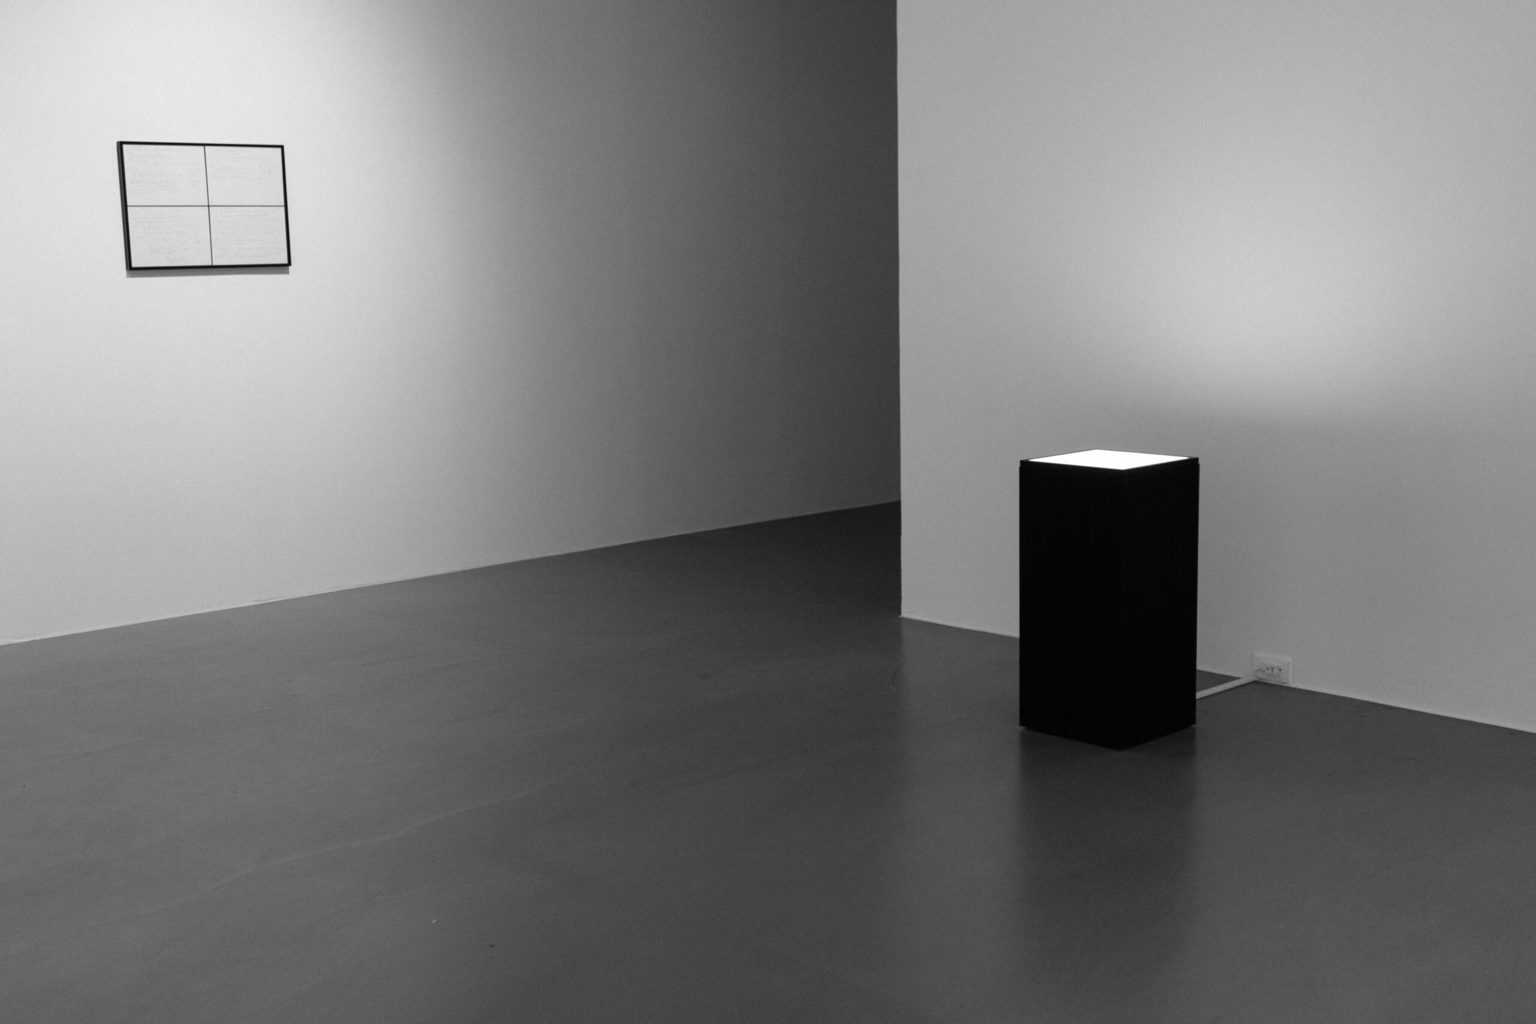 A black and white room with shiny and smooth floor